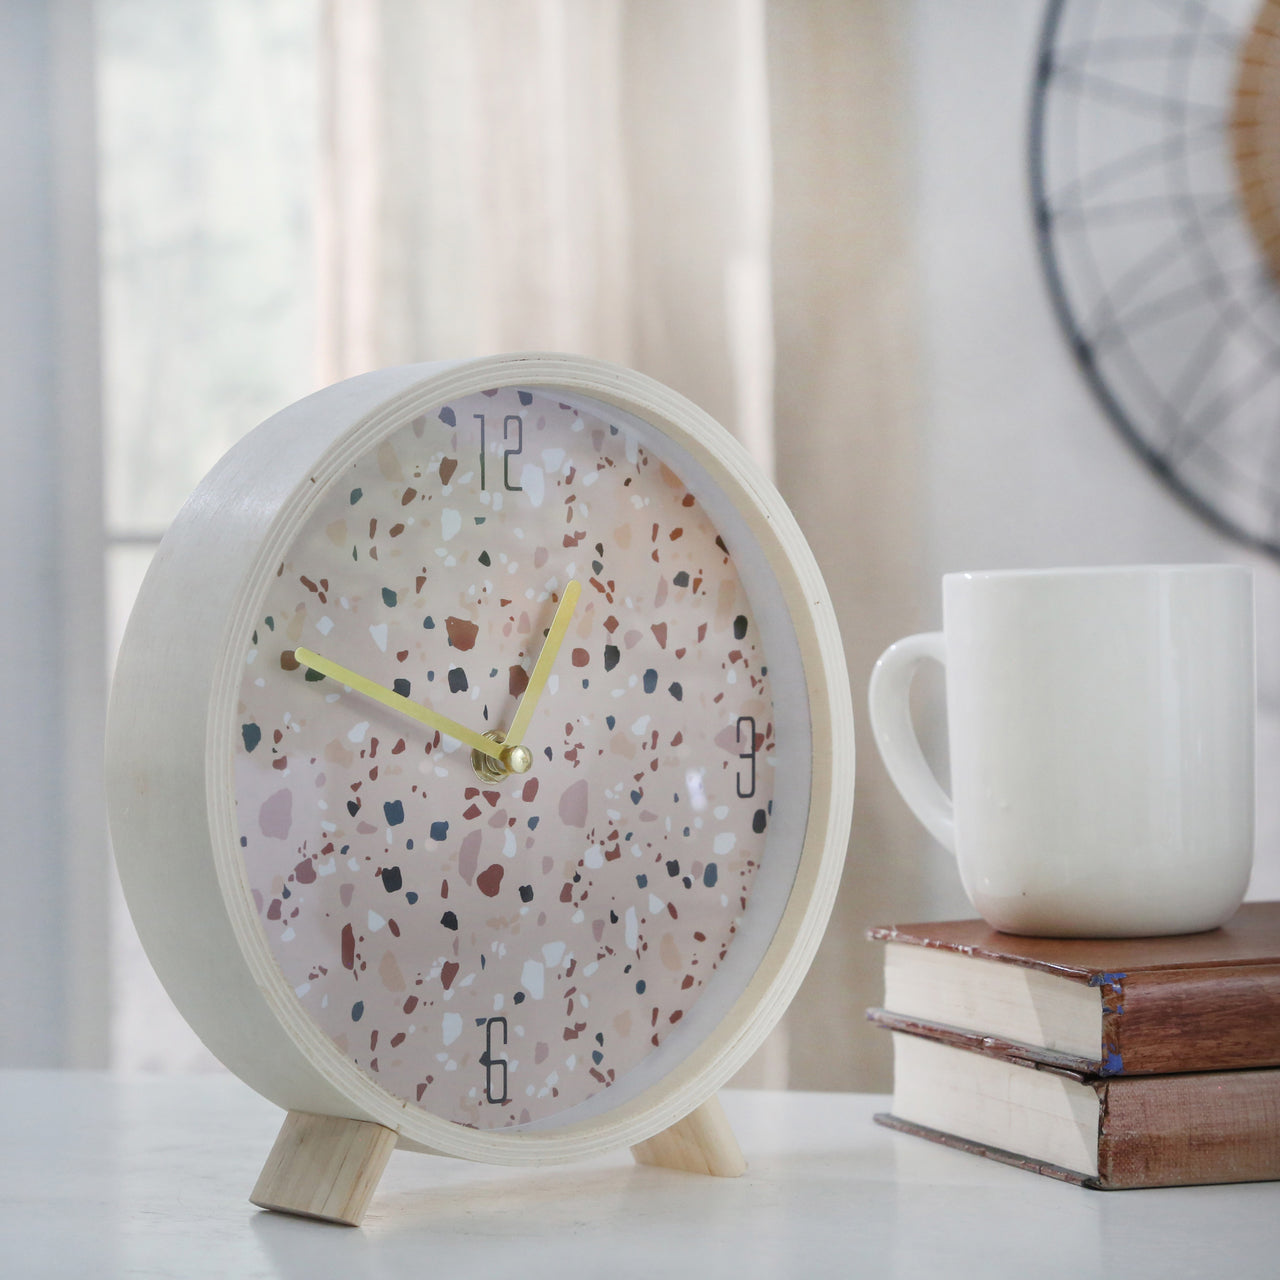 "WOOD 8"" TERRAZZO TABLE CLOCK,PINK - Casa Muebles"